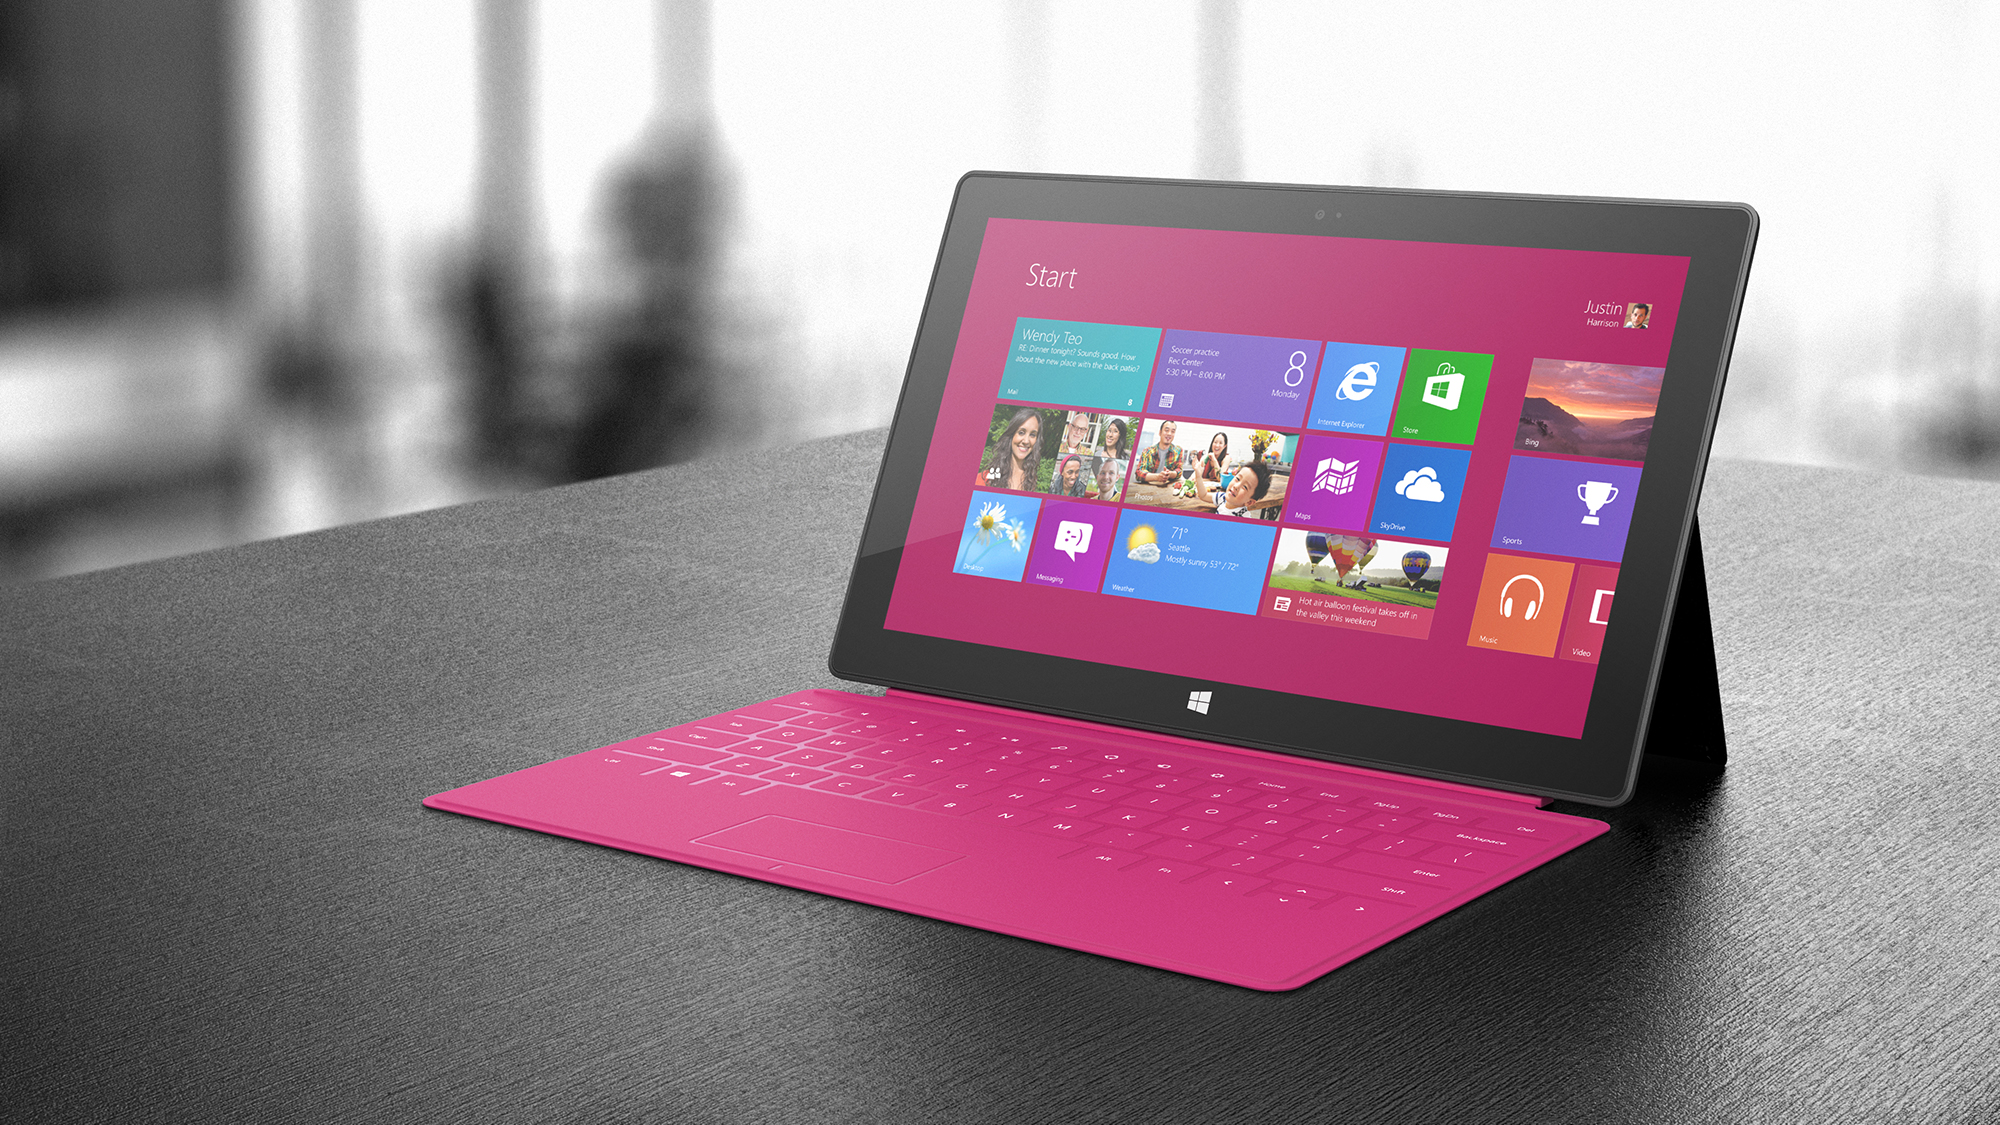 Magenta is obviously the best keyboard color for the Surface.